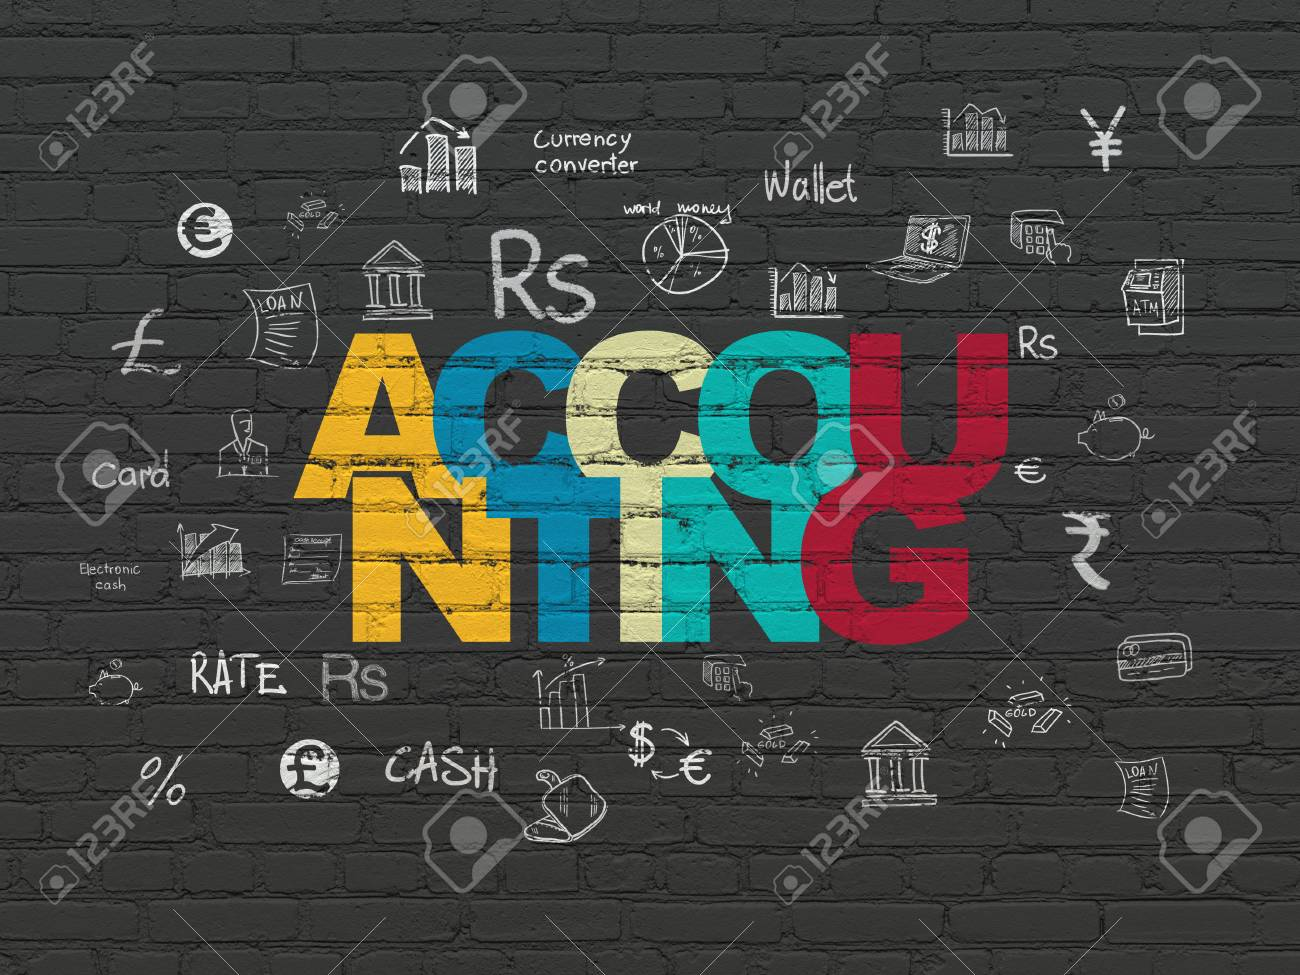 Free Line Art Converter : Currency concept: painted multicolor text accounting on black